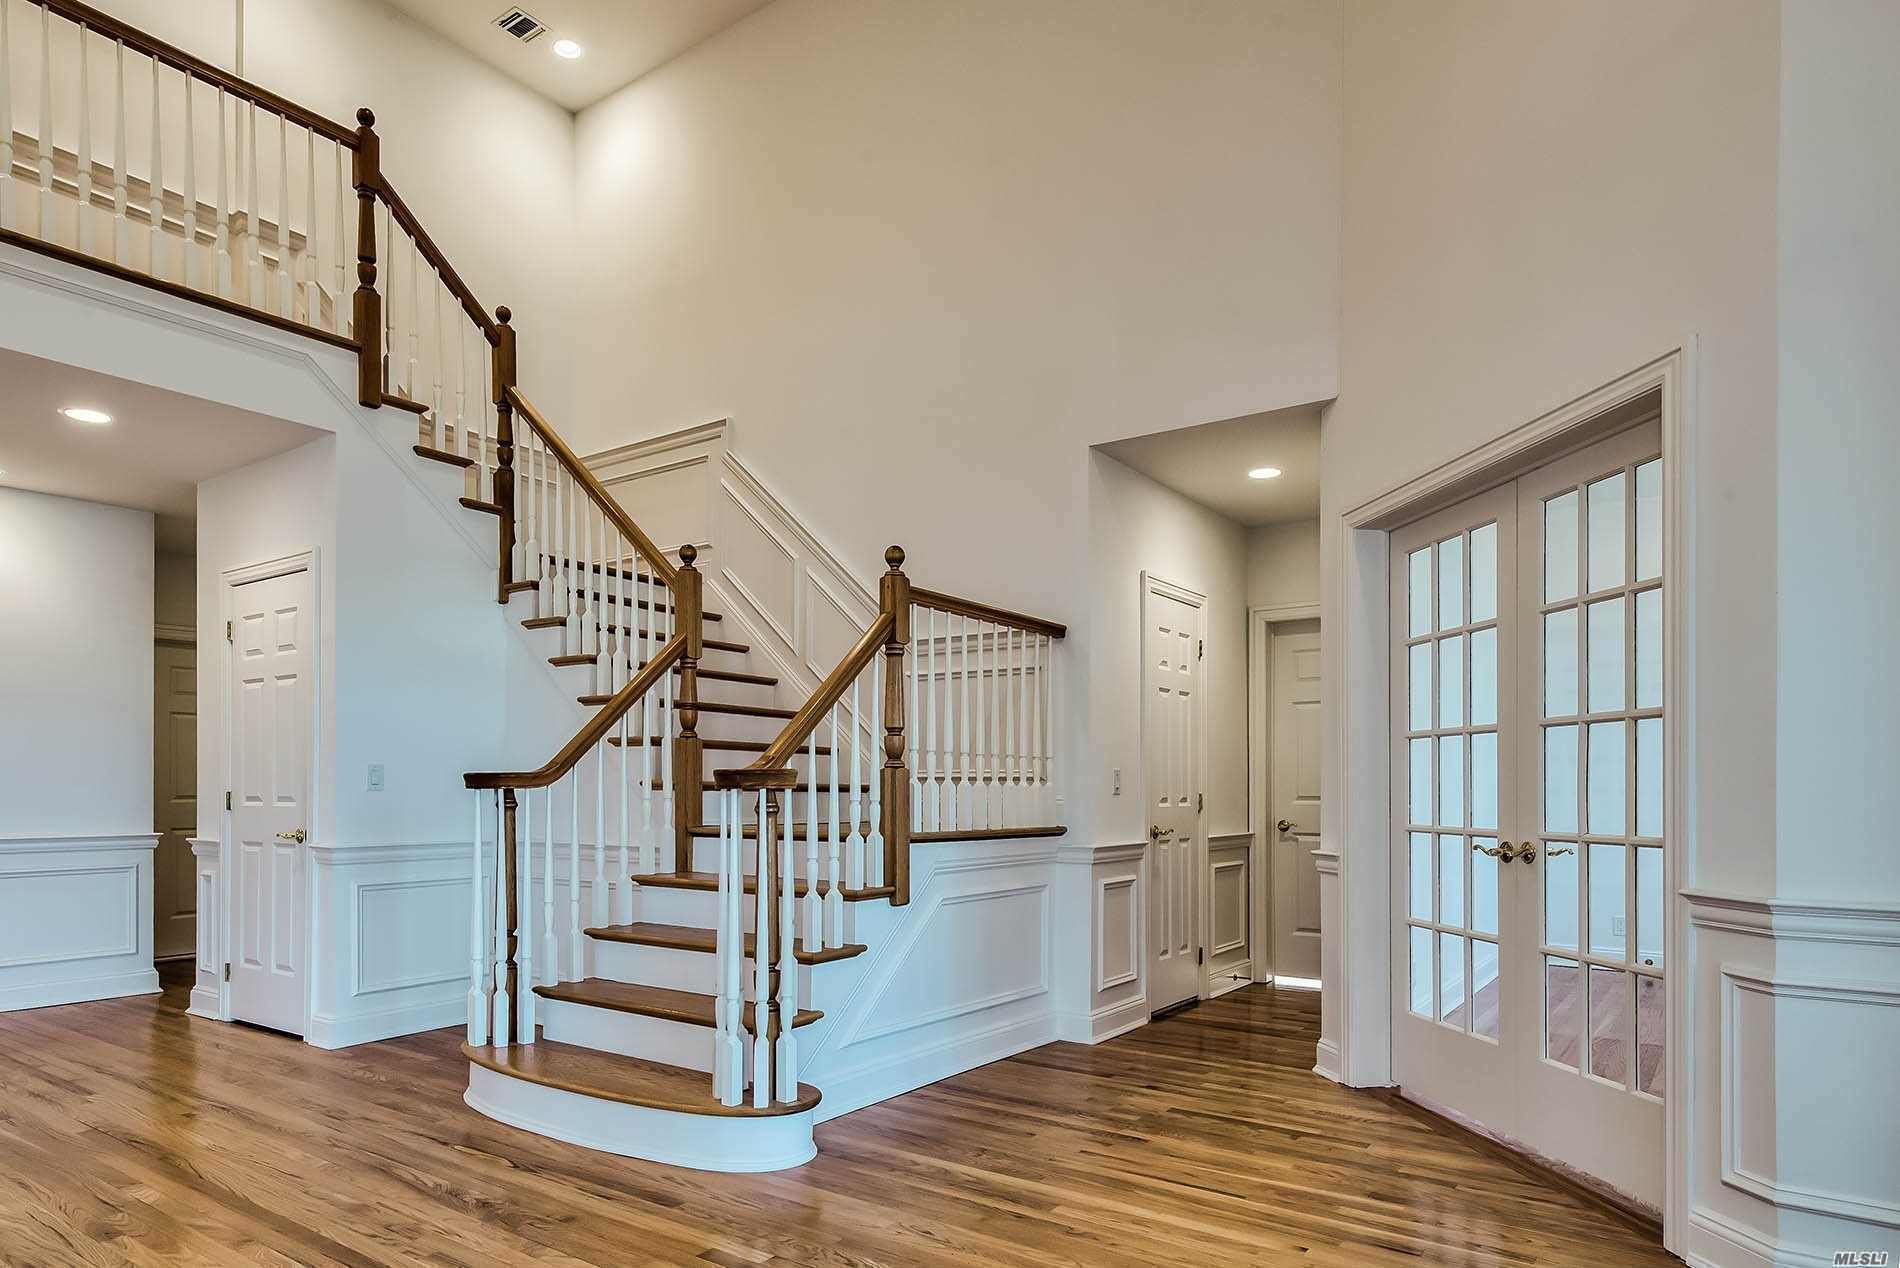 This Luxurious Sun-Drenched Ashford Model Is In A Prime Location, Backing The Pond On A Cul-De-Sac. The 1st Floor Features An Elegant 2-Story Entry With A Grand Staircase And Is Home To A Large Open Concept Living/Dining Room, Family Room With Fireplace, Master Suite, Office/Bed, A Guest Suite, Eik And Laundry Room. The Kitchen Boasts Beautiful Bay Windows That Overlook The Backyard And Pond With Direct Access To A Wooden Deck. The 2nd Floor Offers An Additional Guest Suite.